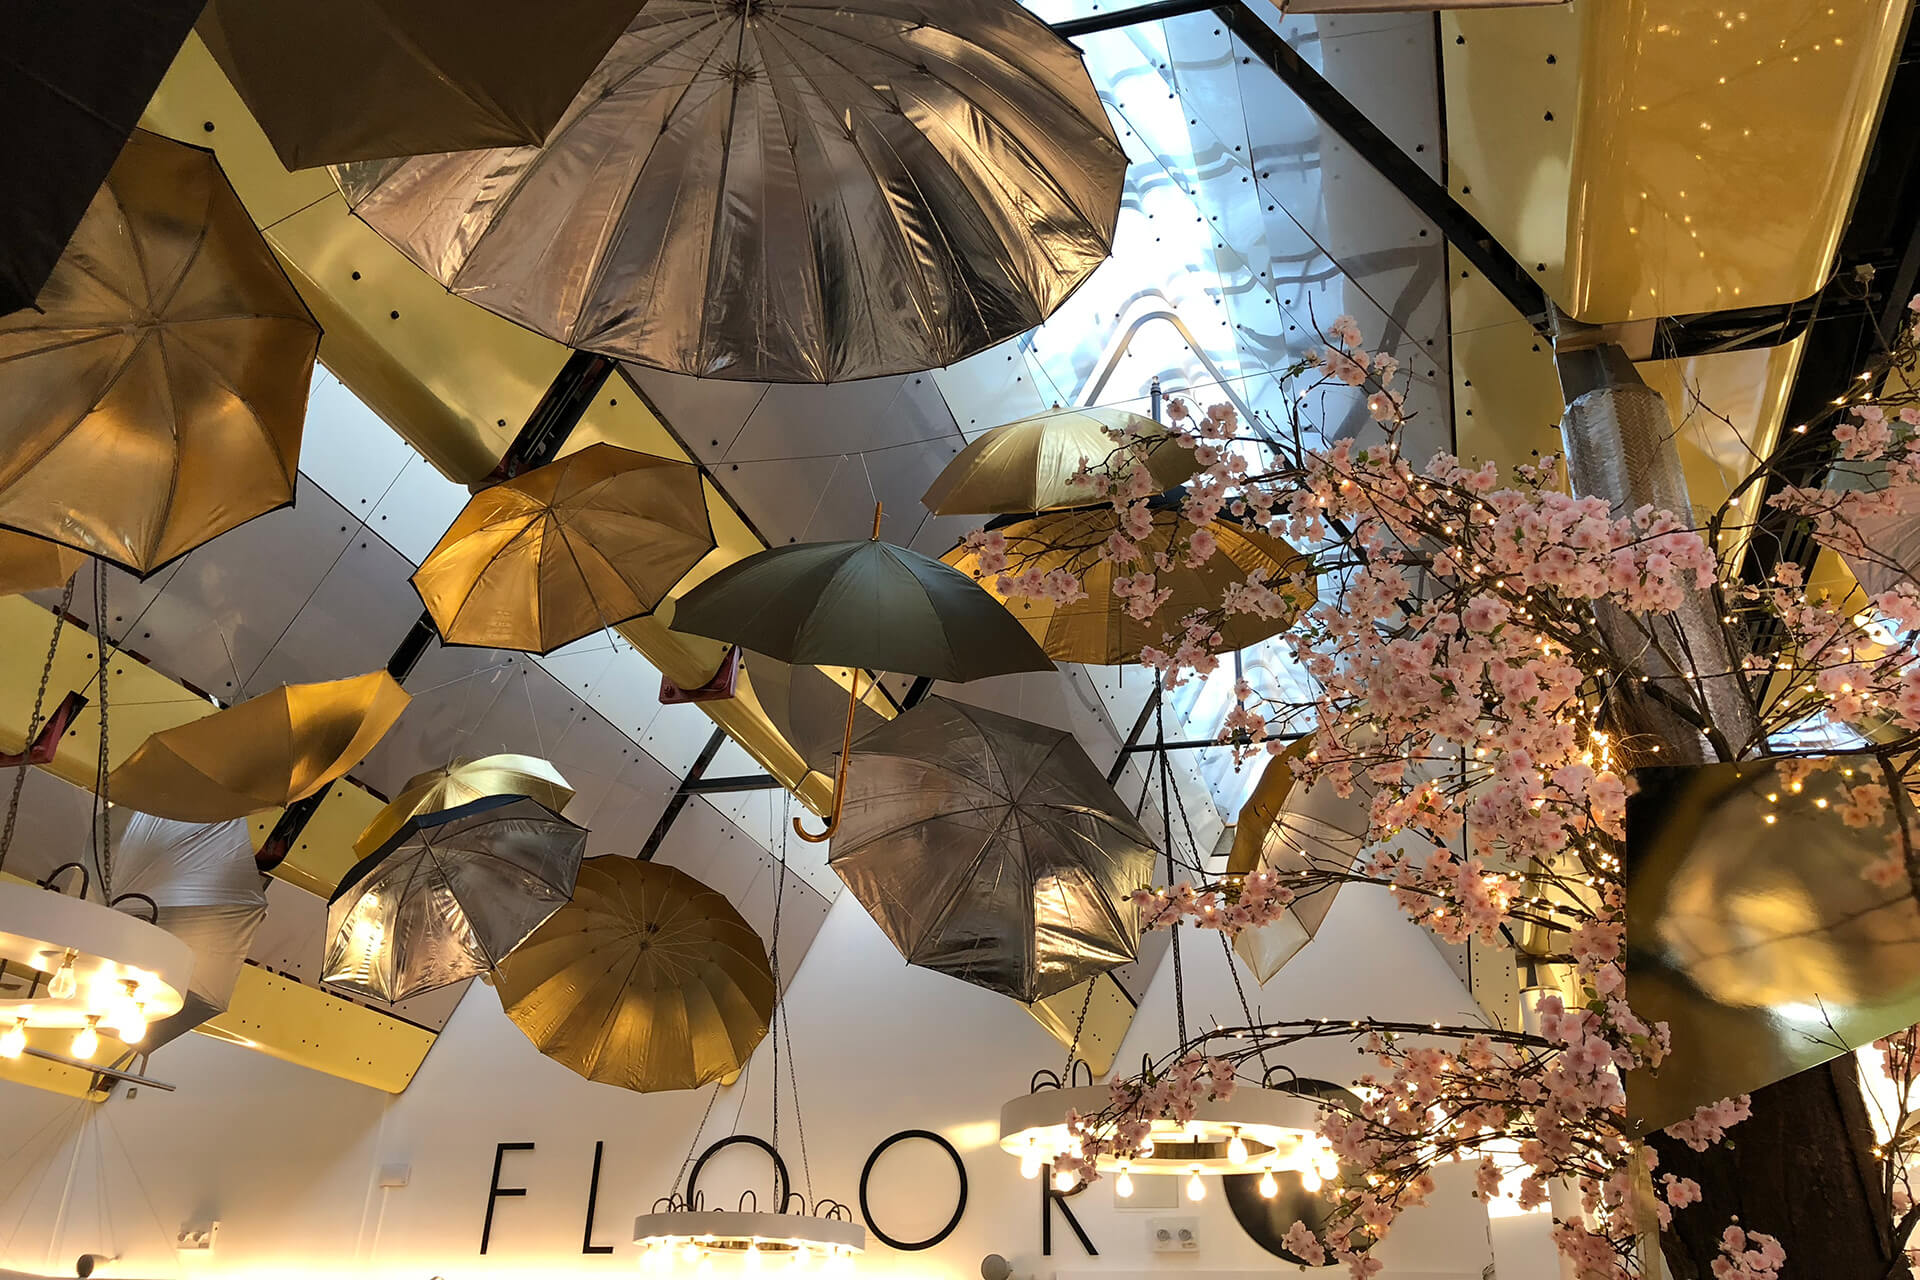 Harvey Nichols – Mary Poppins, Christmas, visual merchandising, display, umbrellas, fifth floor